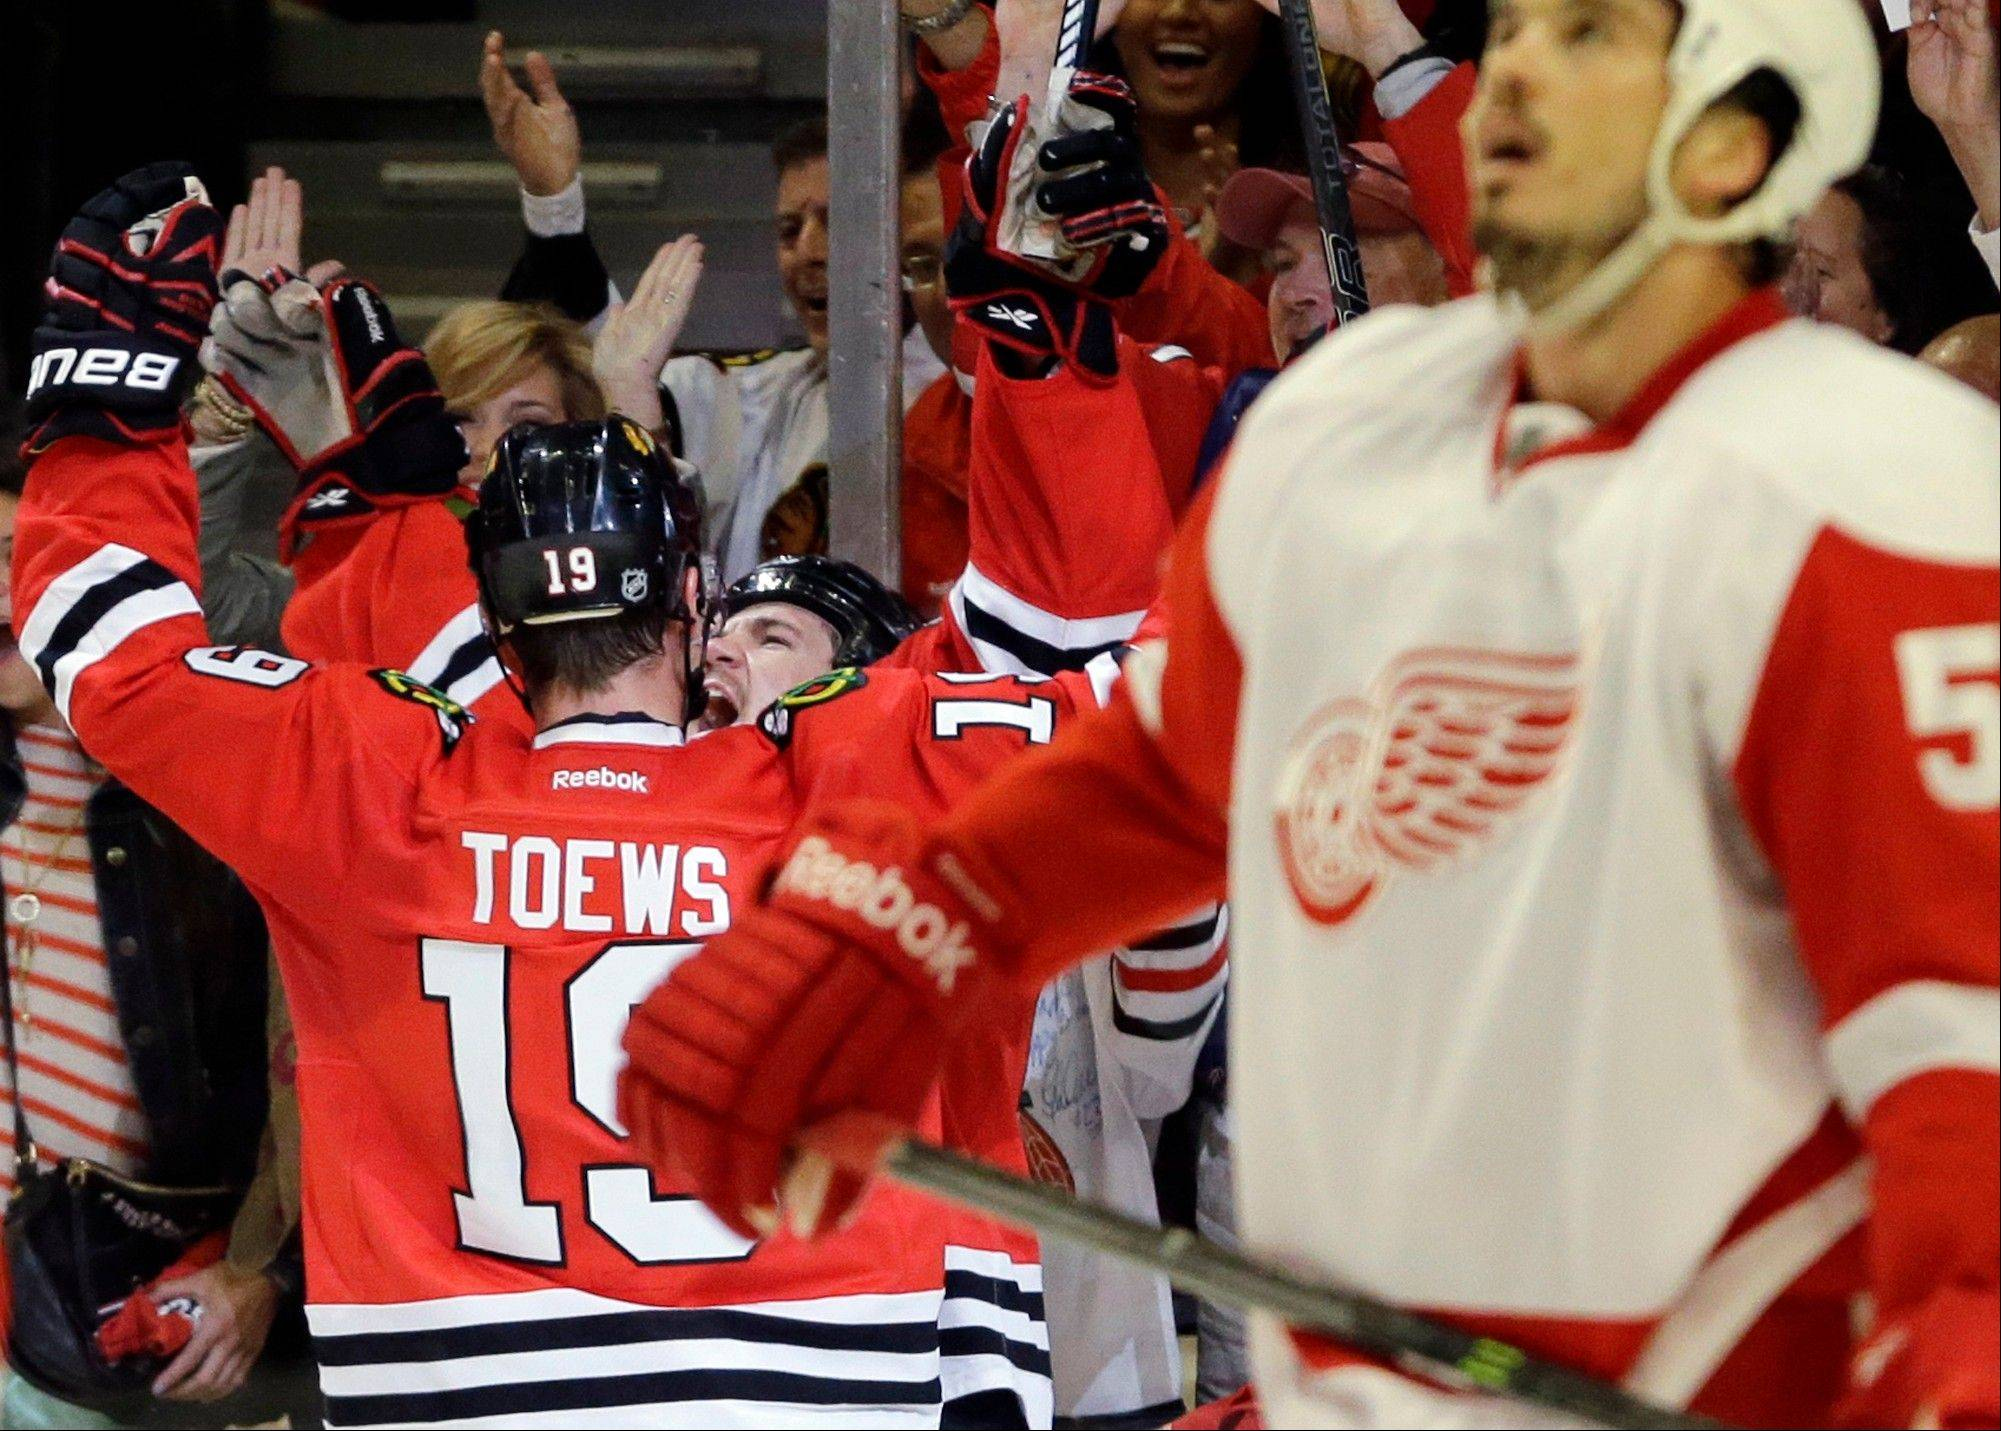 The Blackhawks hope to be doing more celebrating in Monday night�s Game 6 at Detroit, while continuing to frustrate the Red Wings.